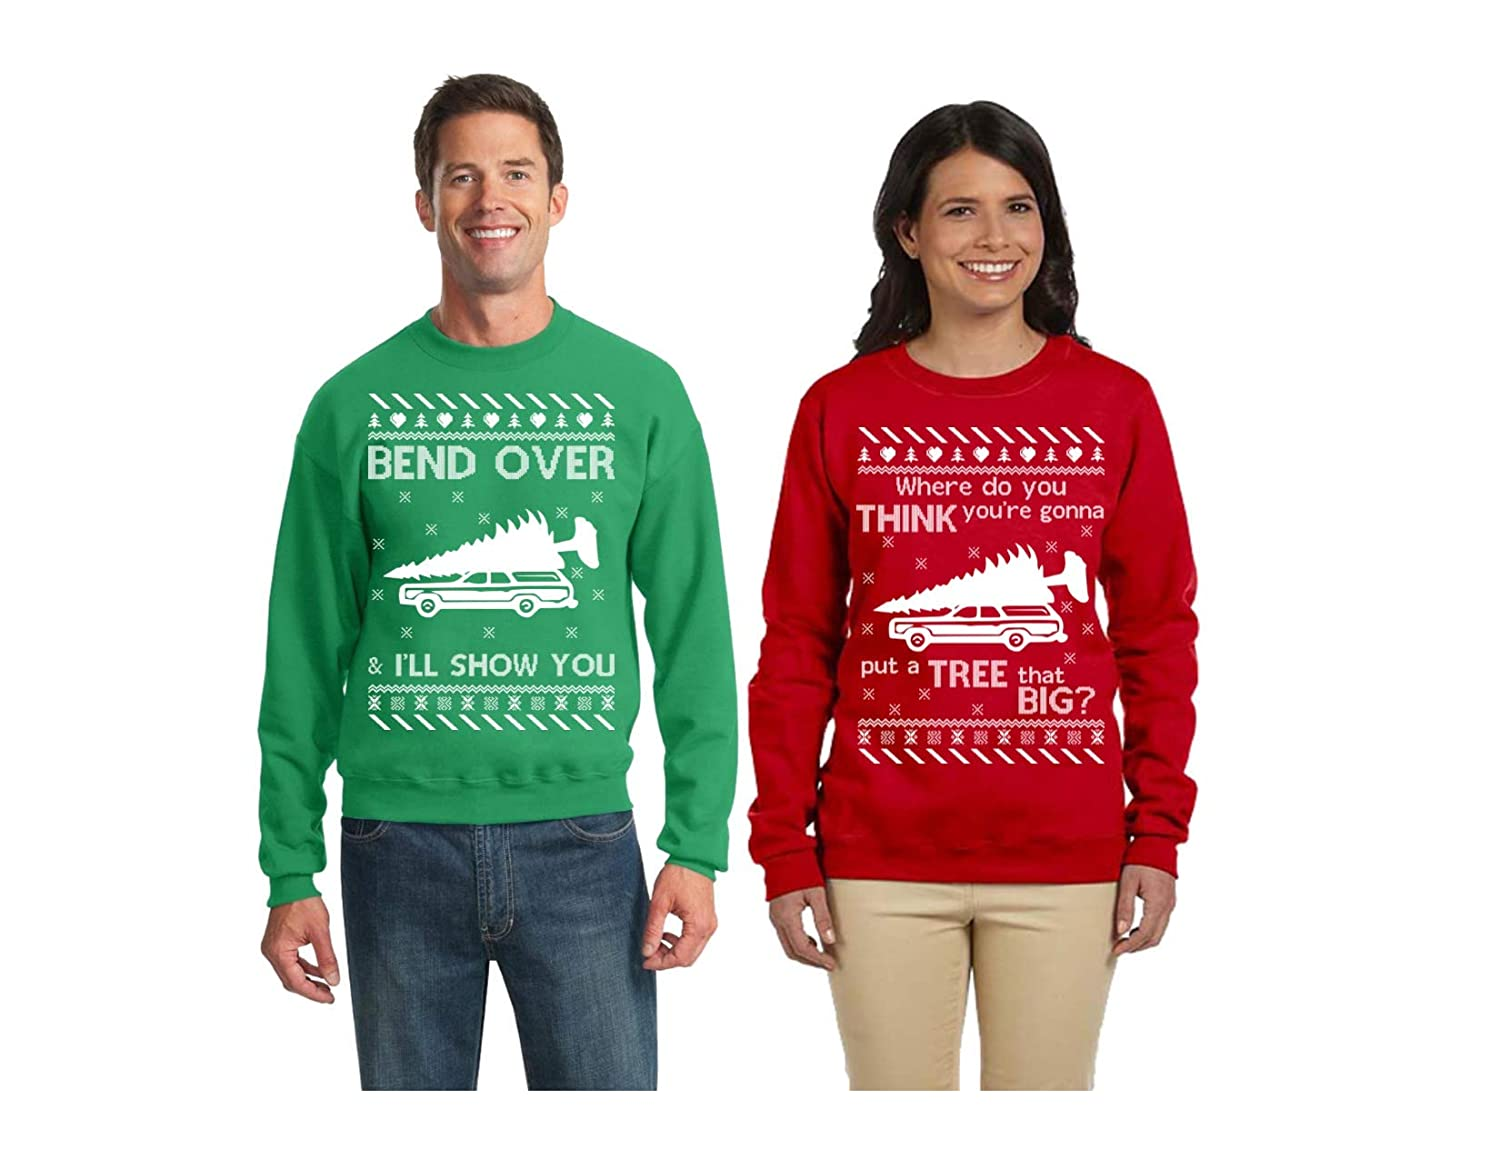 Why Carpet Wet Todd Margo Ugly Christmas Vacation Sweater Couples Match Hoodie